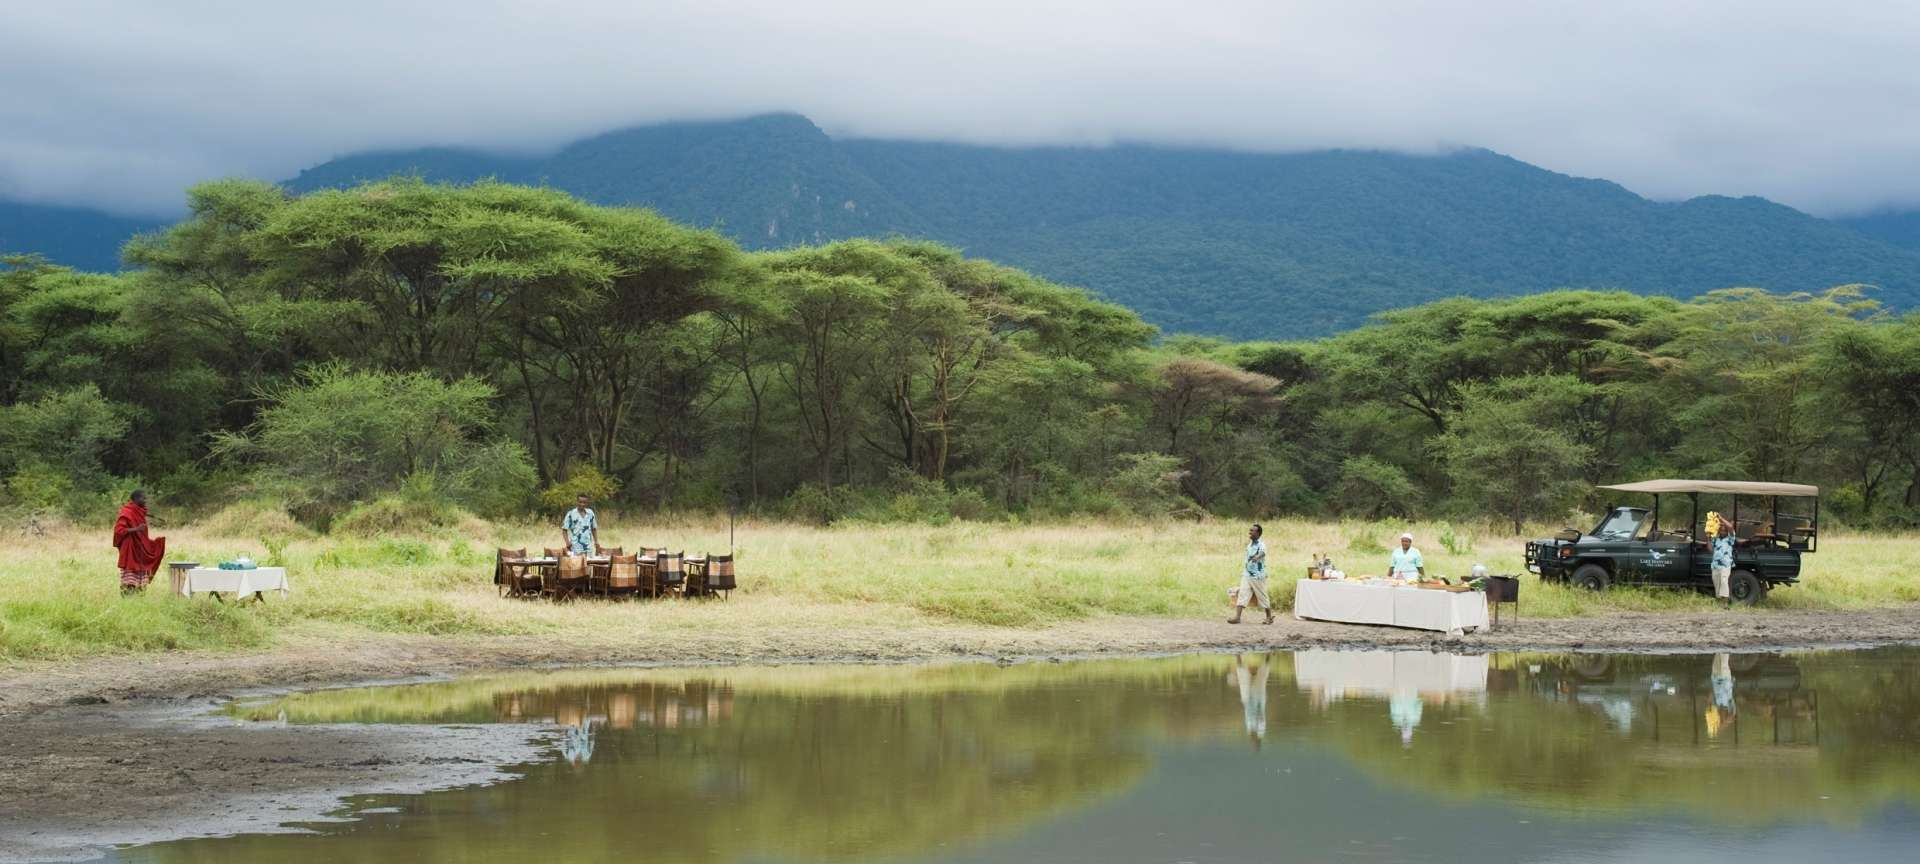 Lake Manyara is lush and green this time of the year